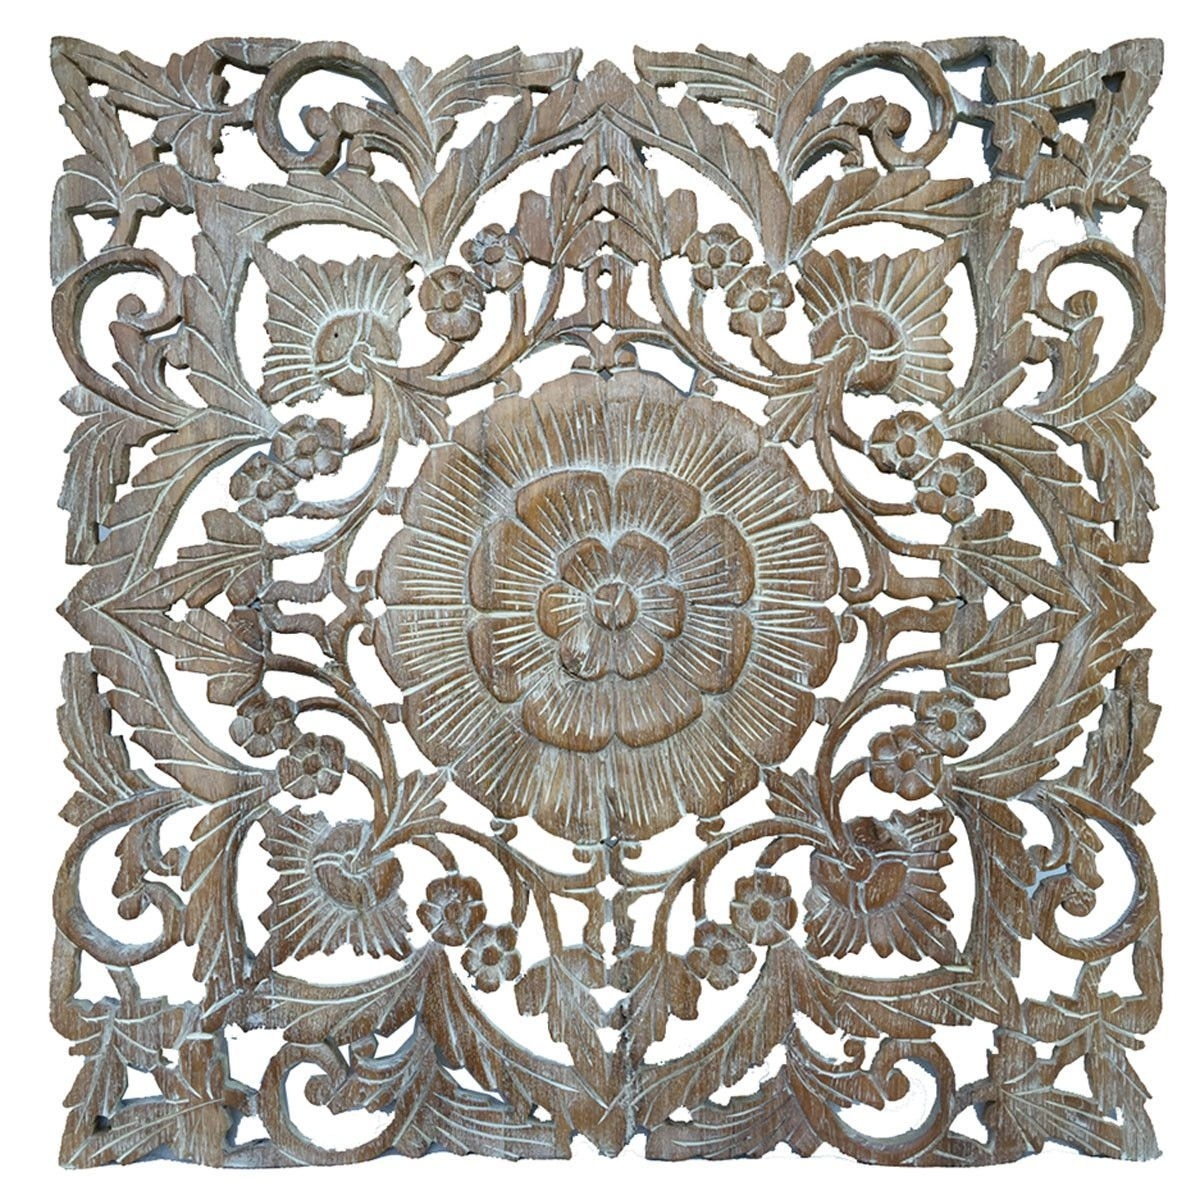 Oriental Carved Floral Wall Decor. Unique Asian Wood Wall Art. Large intended for Latest Oriental Wall Art